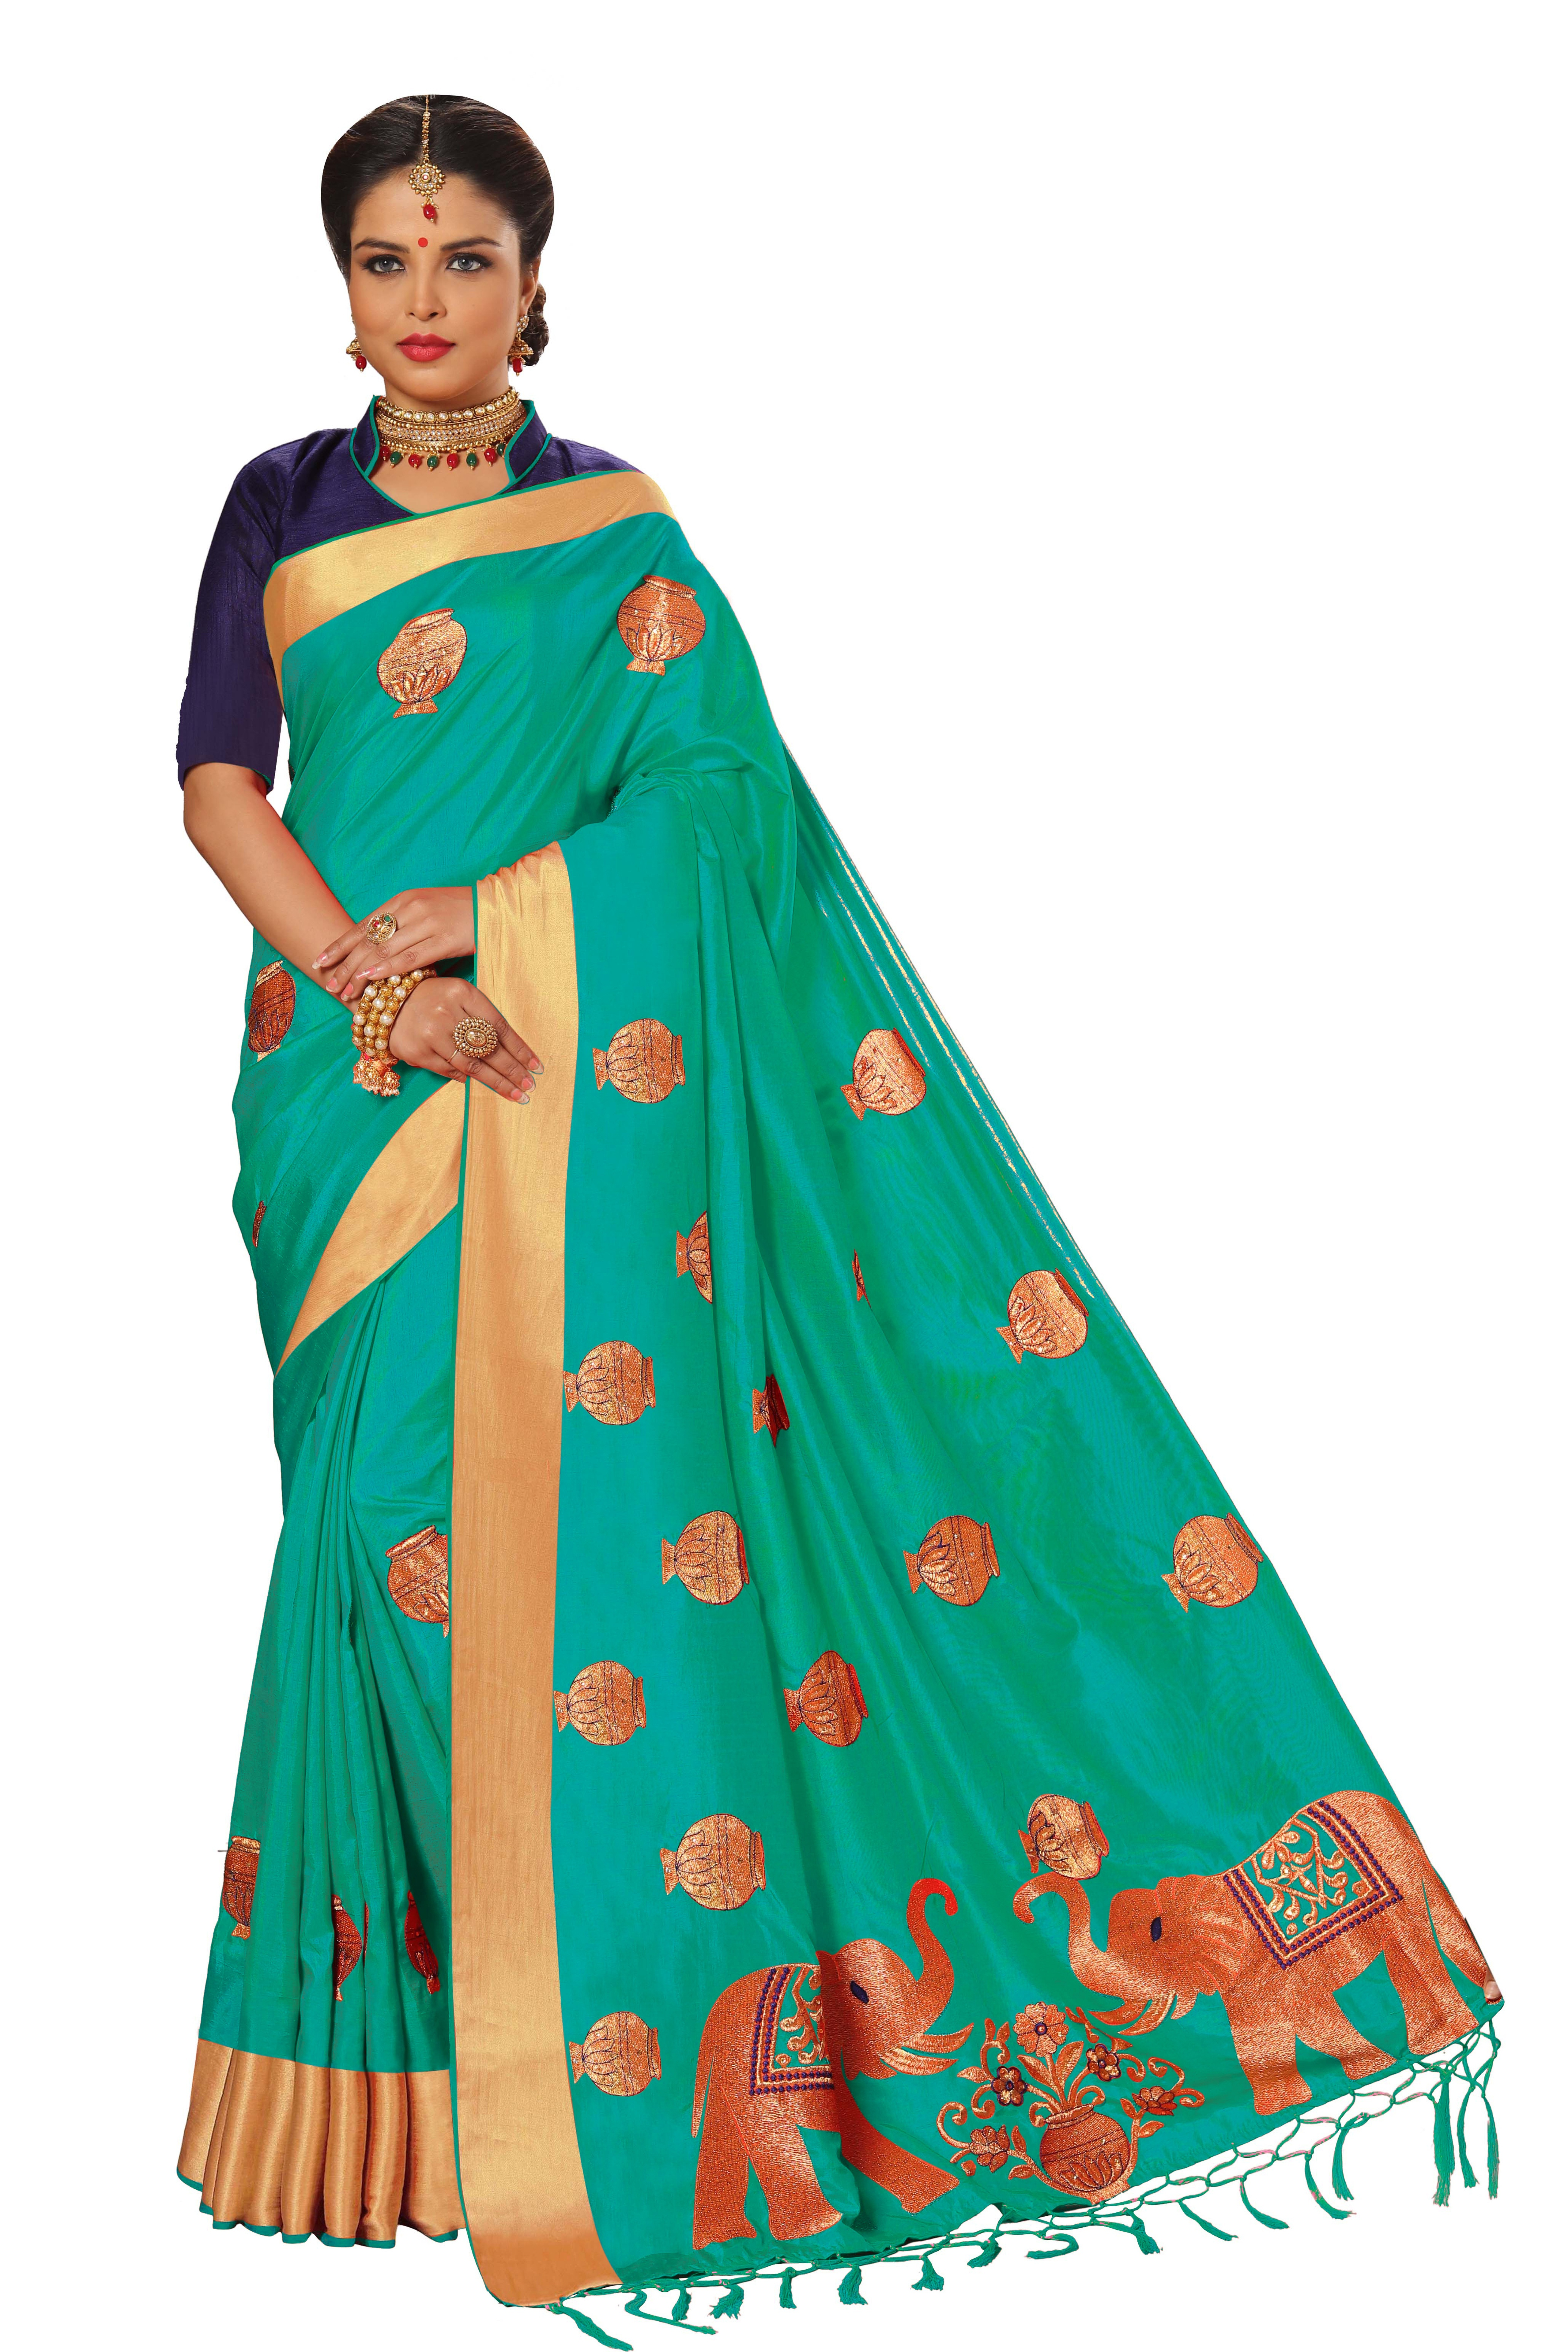 Kalamkari Embroidered Silk Saree collection